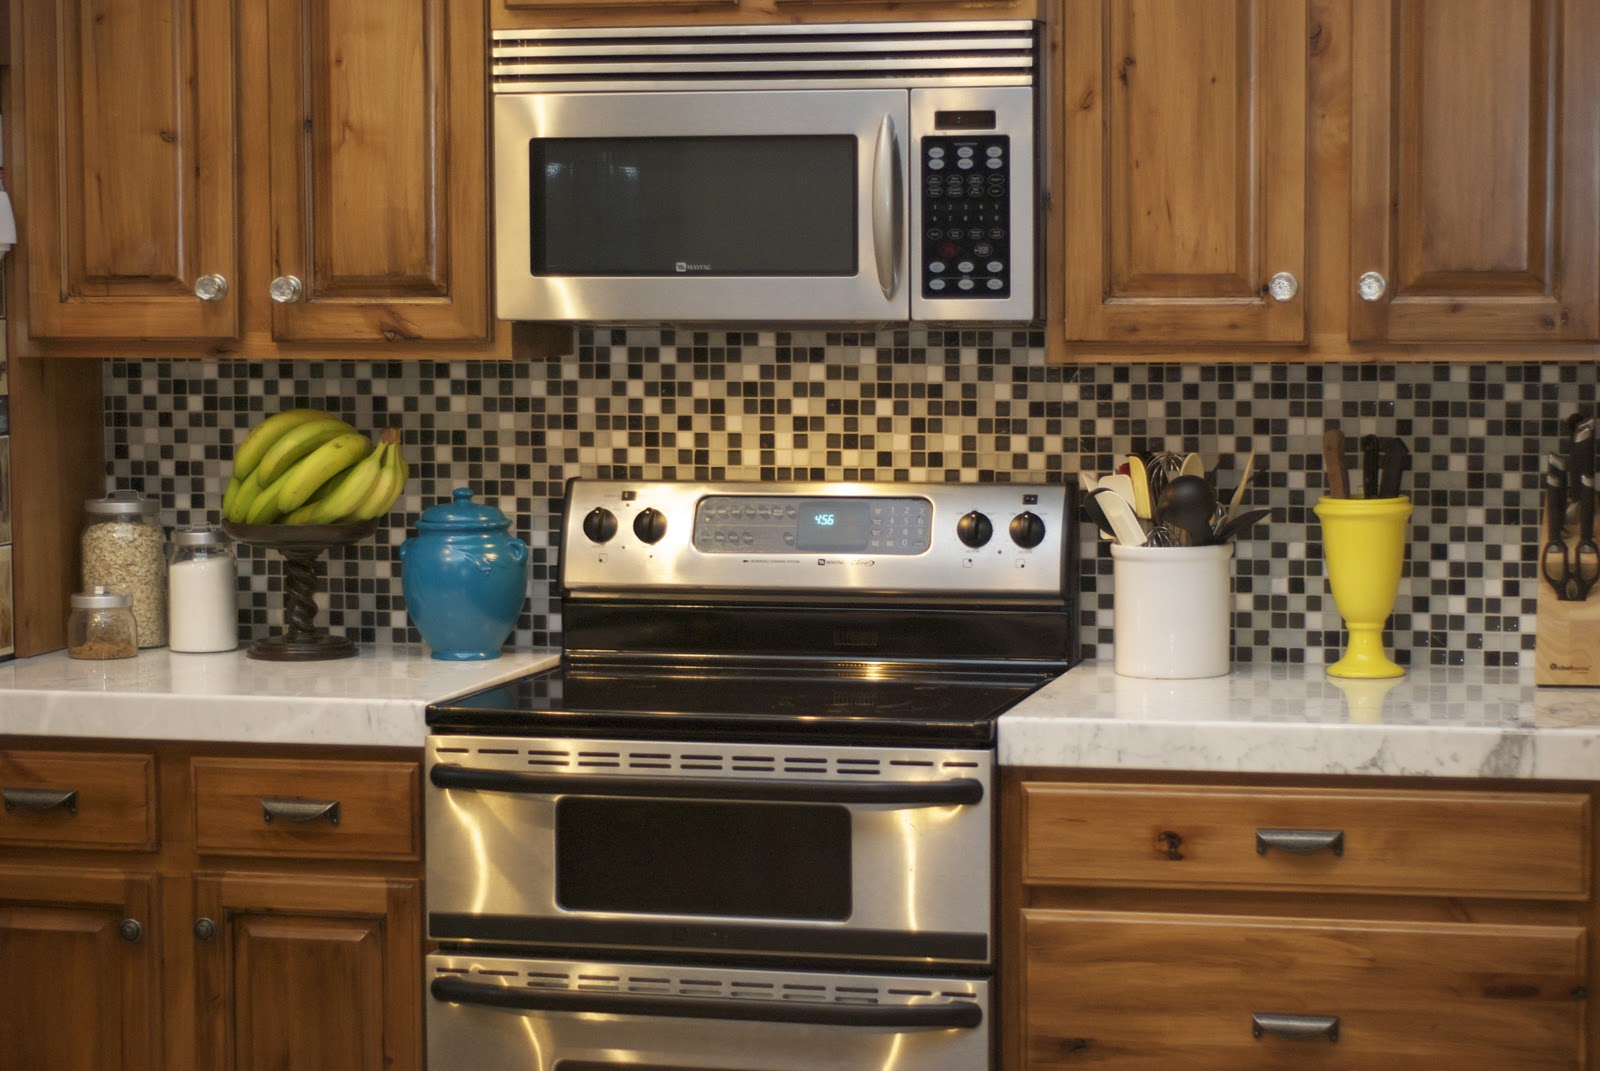 Kitchen Design And Backsplash A Pina Colada Backsplash Ideas